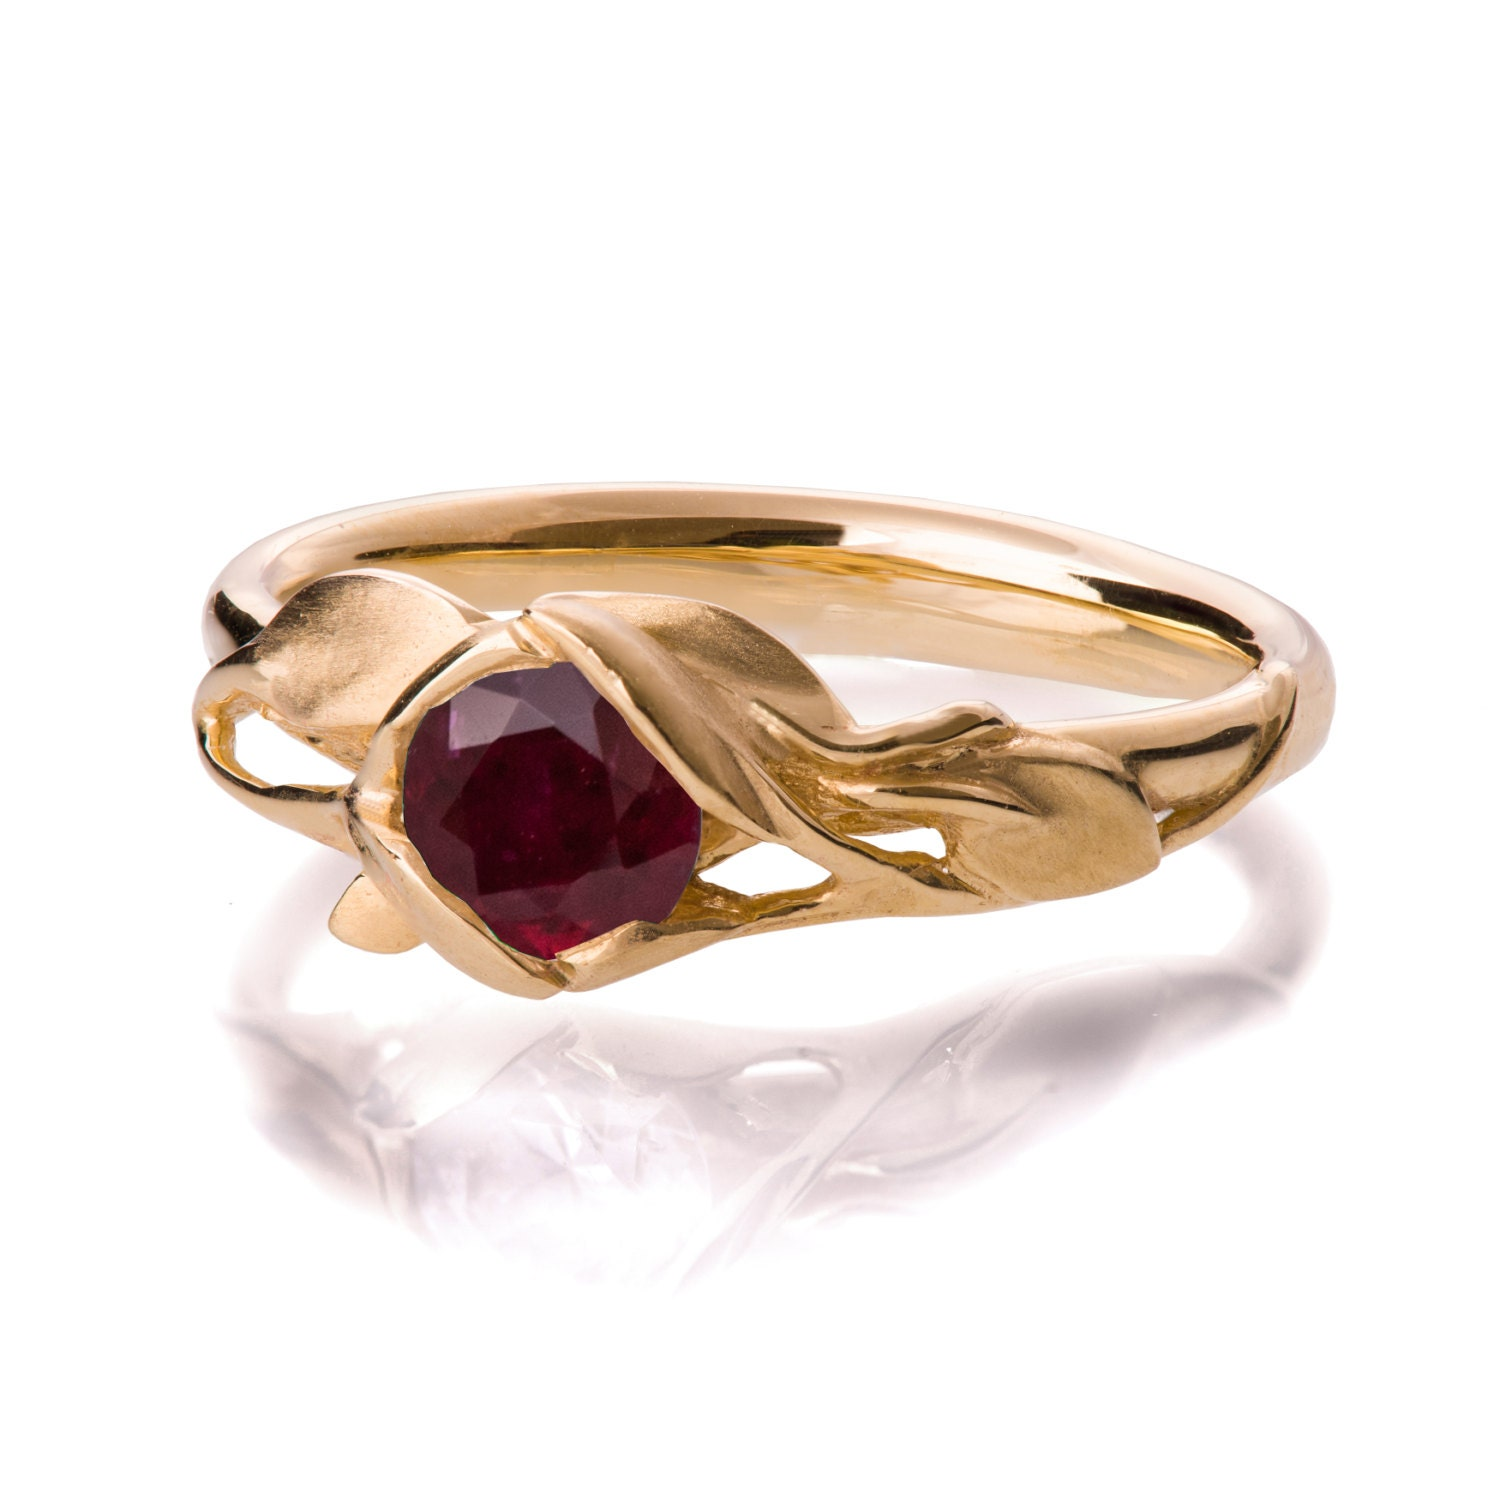 Leaves Engagement Ring  18k Yellow Gold And Ruby Engagement Ring,  Engagement Ring, Leaf